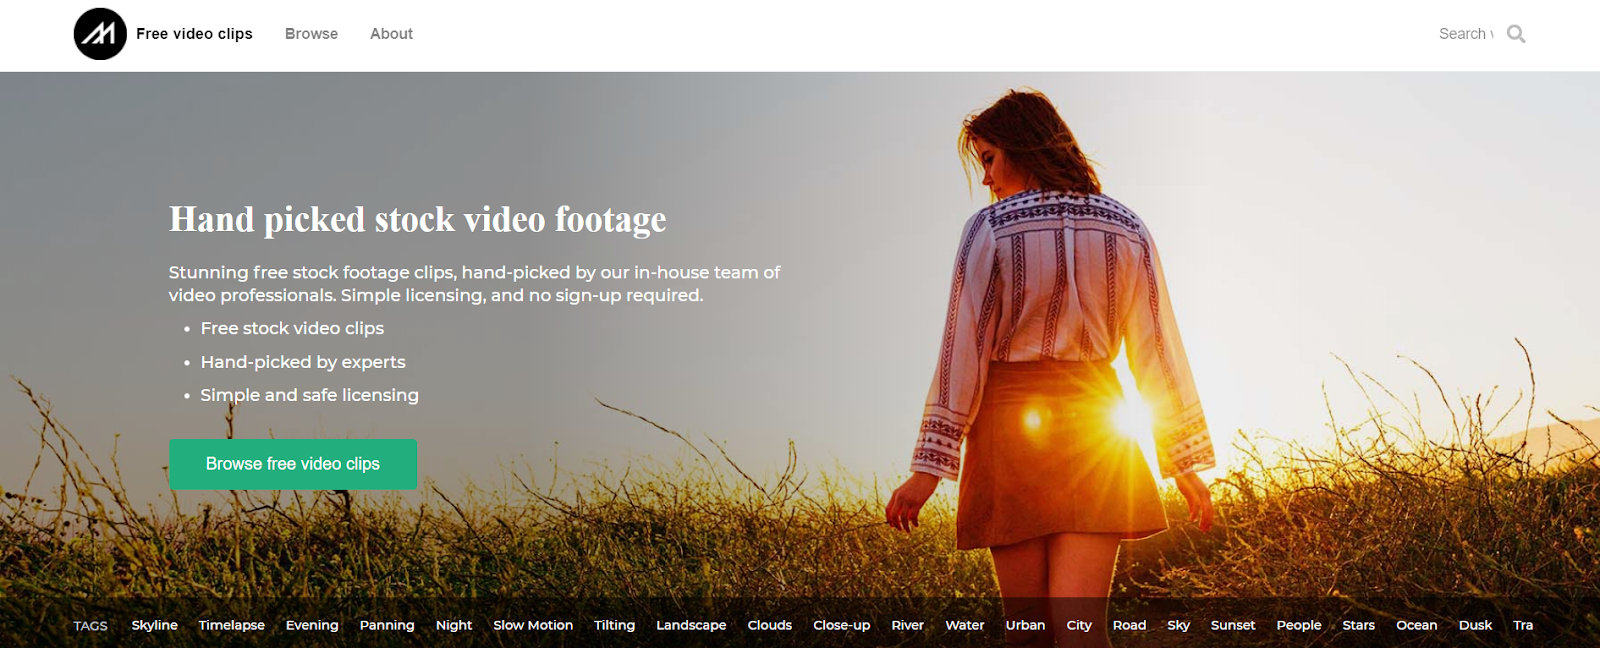 mazwai is website for free stock footage